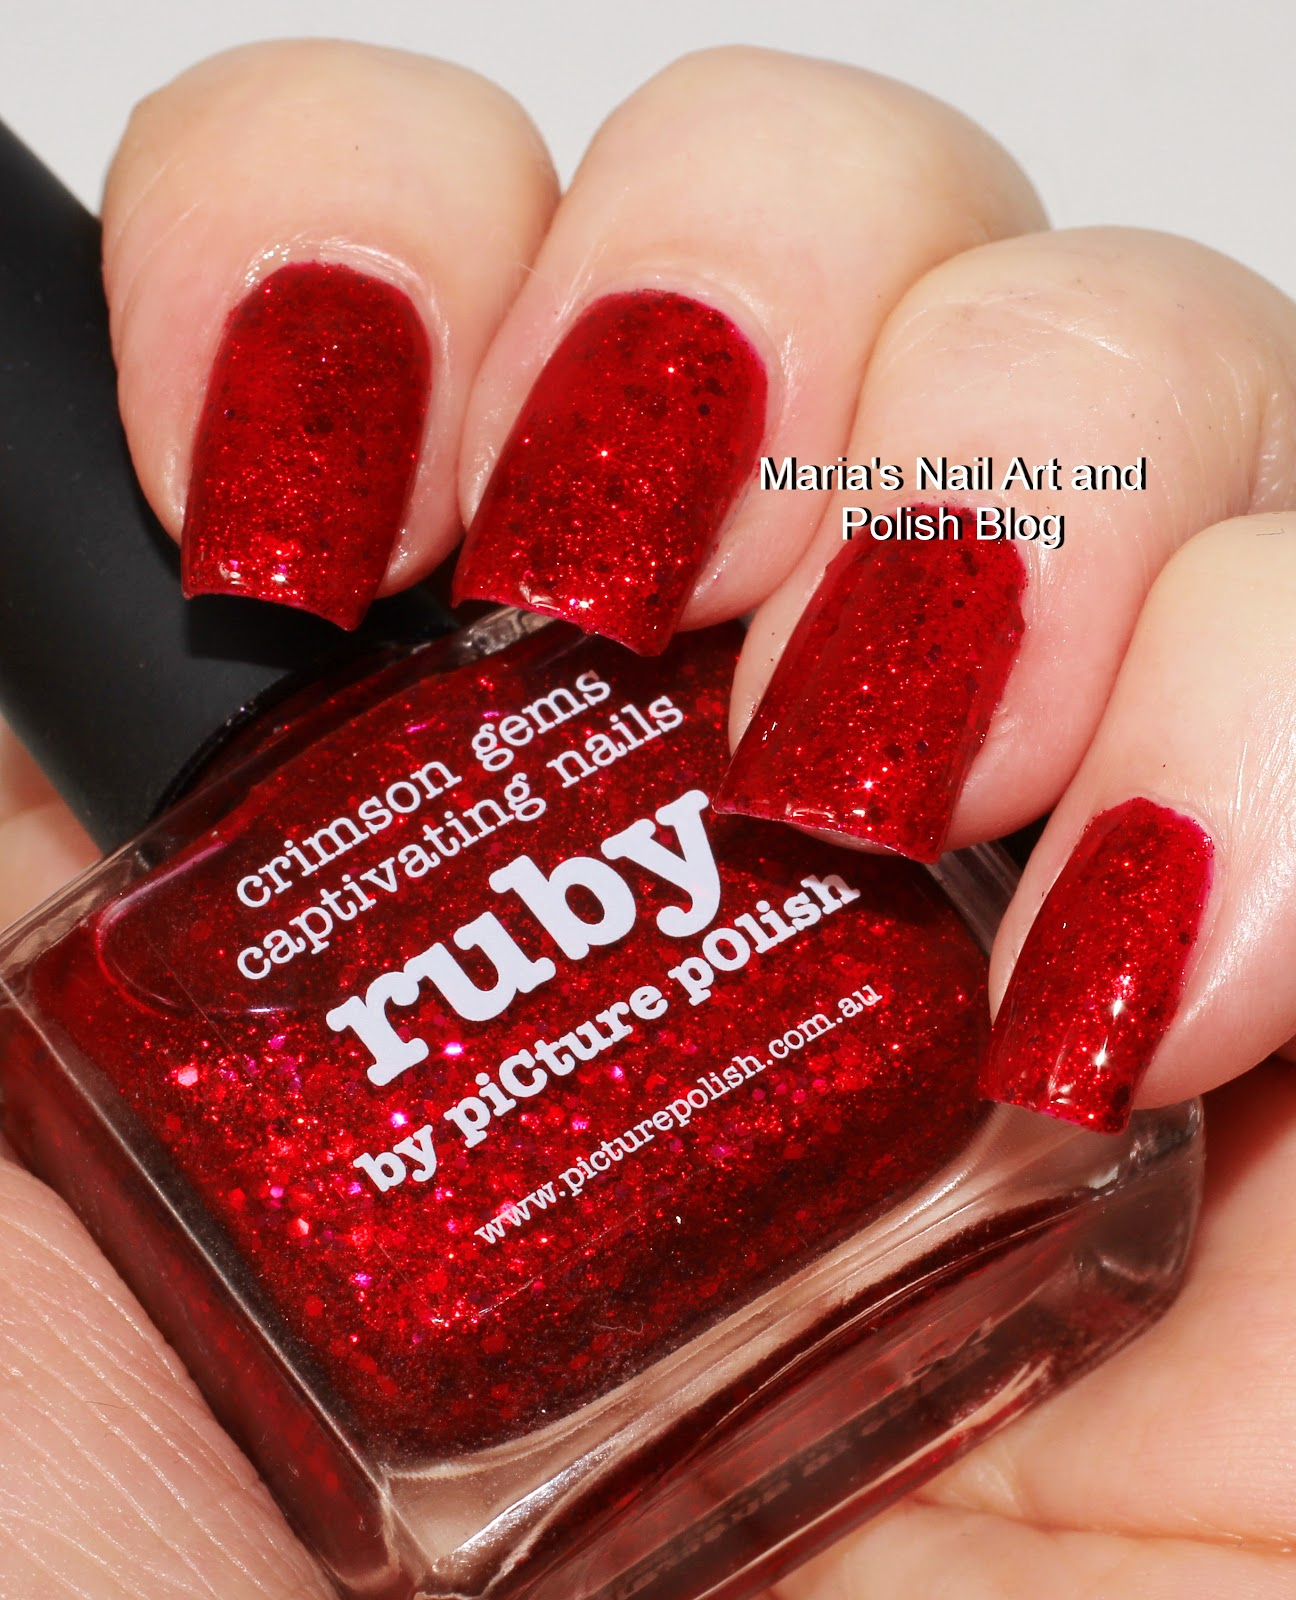 Marias Nail Art And Polish Blog Flushed With Stripes And: Marias Nail Art And Polish Blog: Picture Polish Ruby Swatches